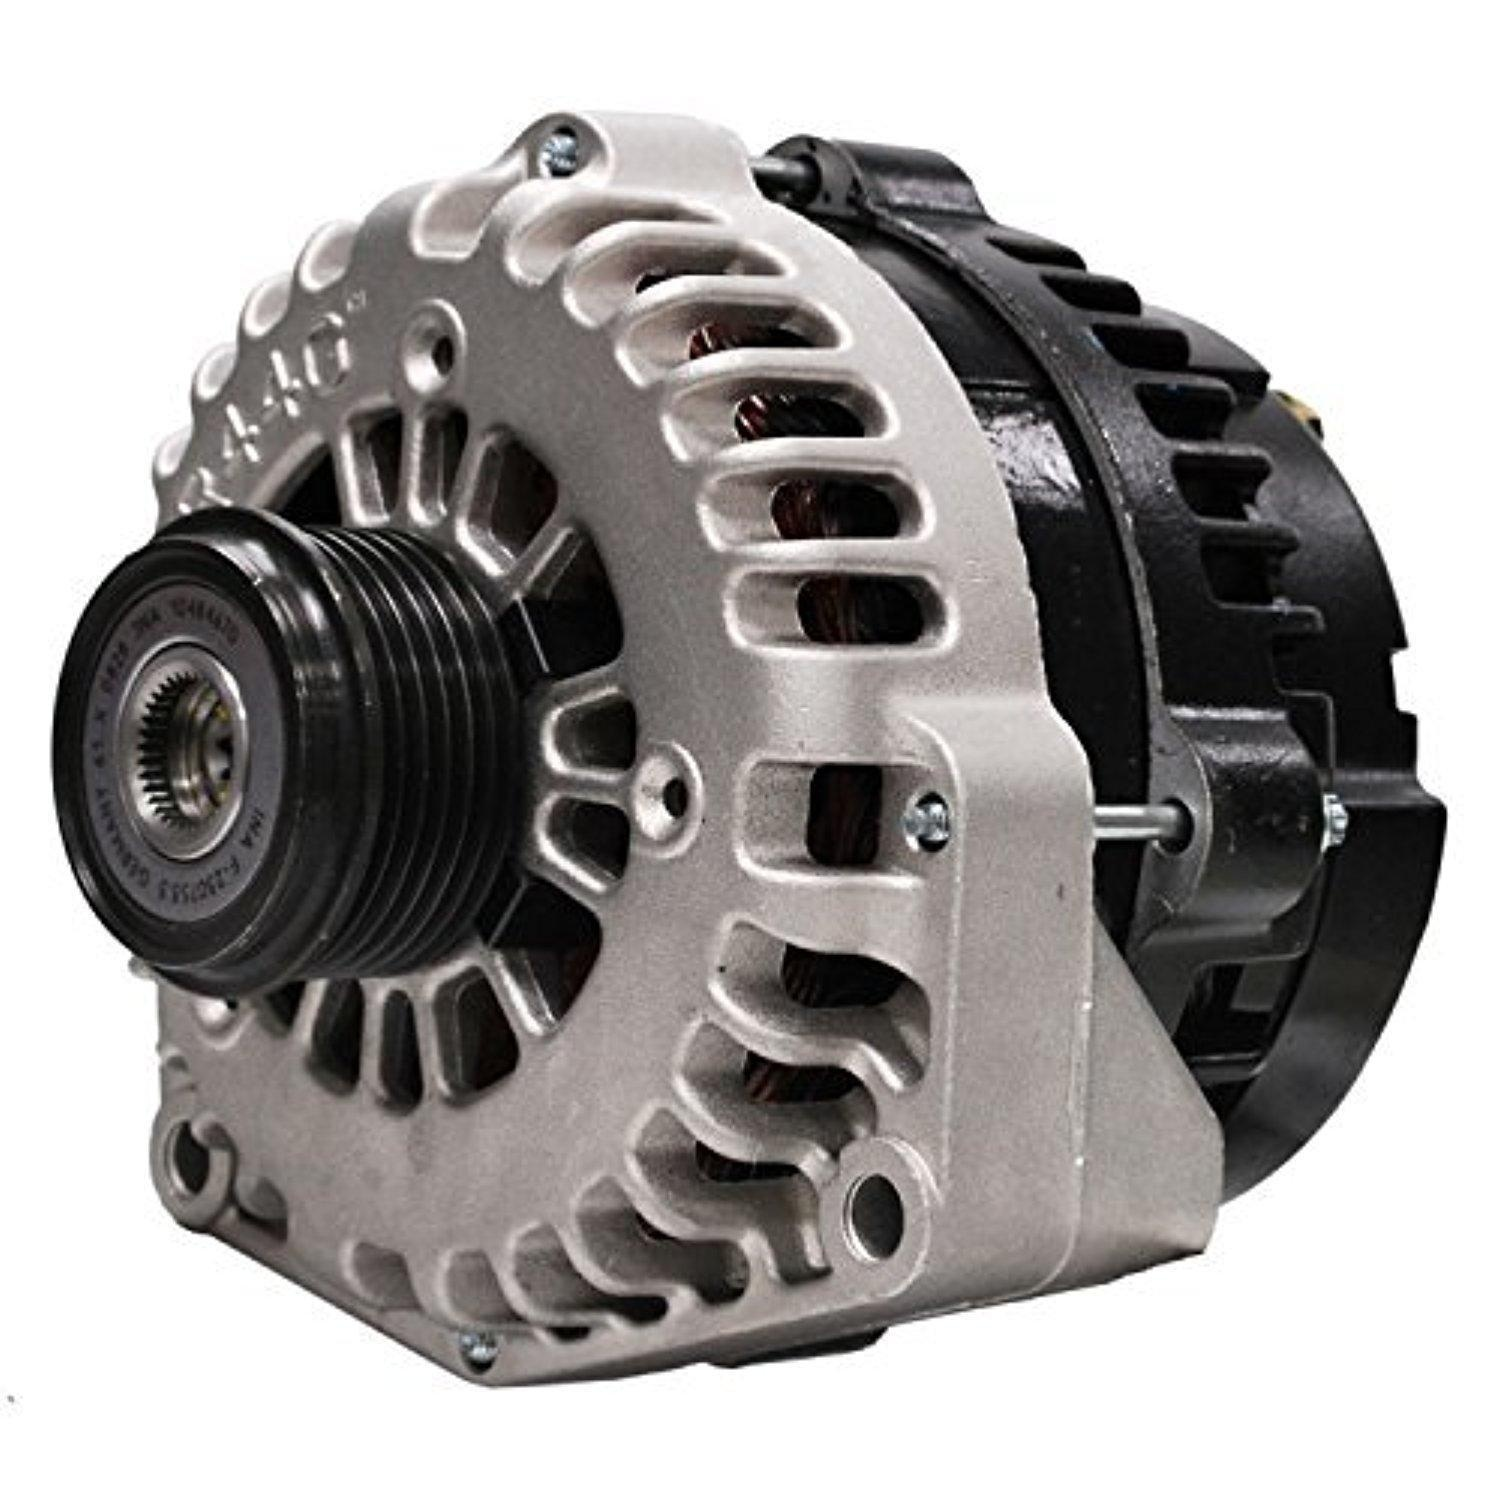 ACDelco 334-2732A Professional Alternator, Remanufactured by ACDelco